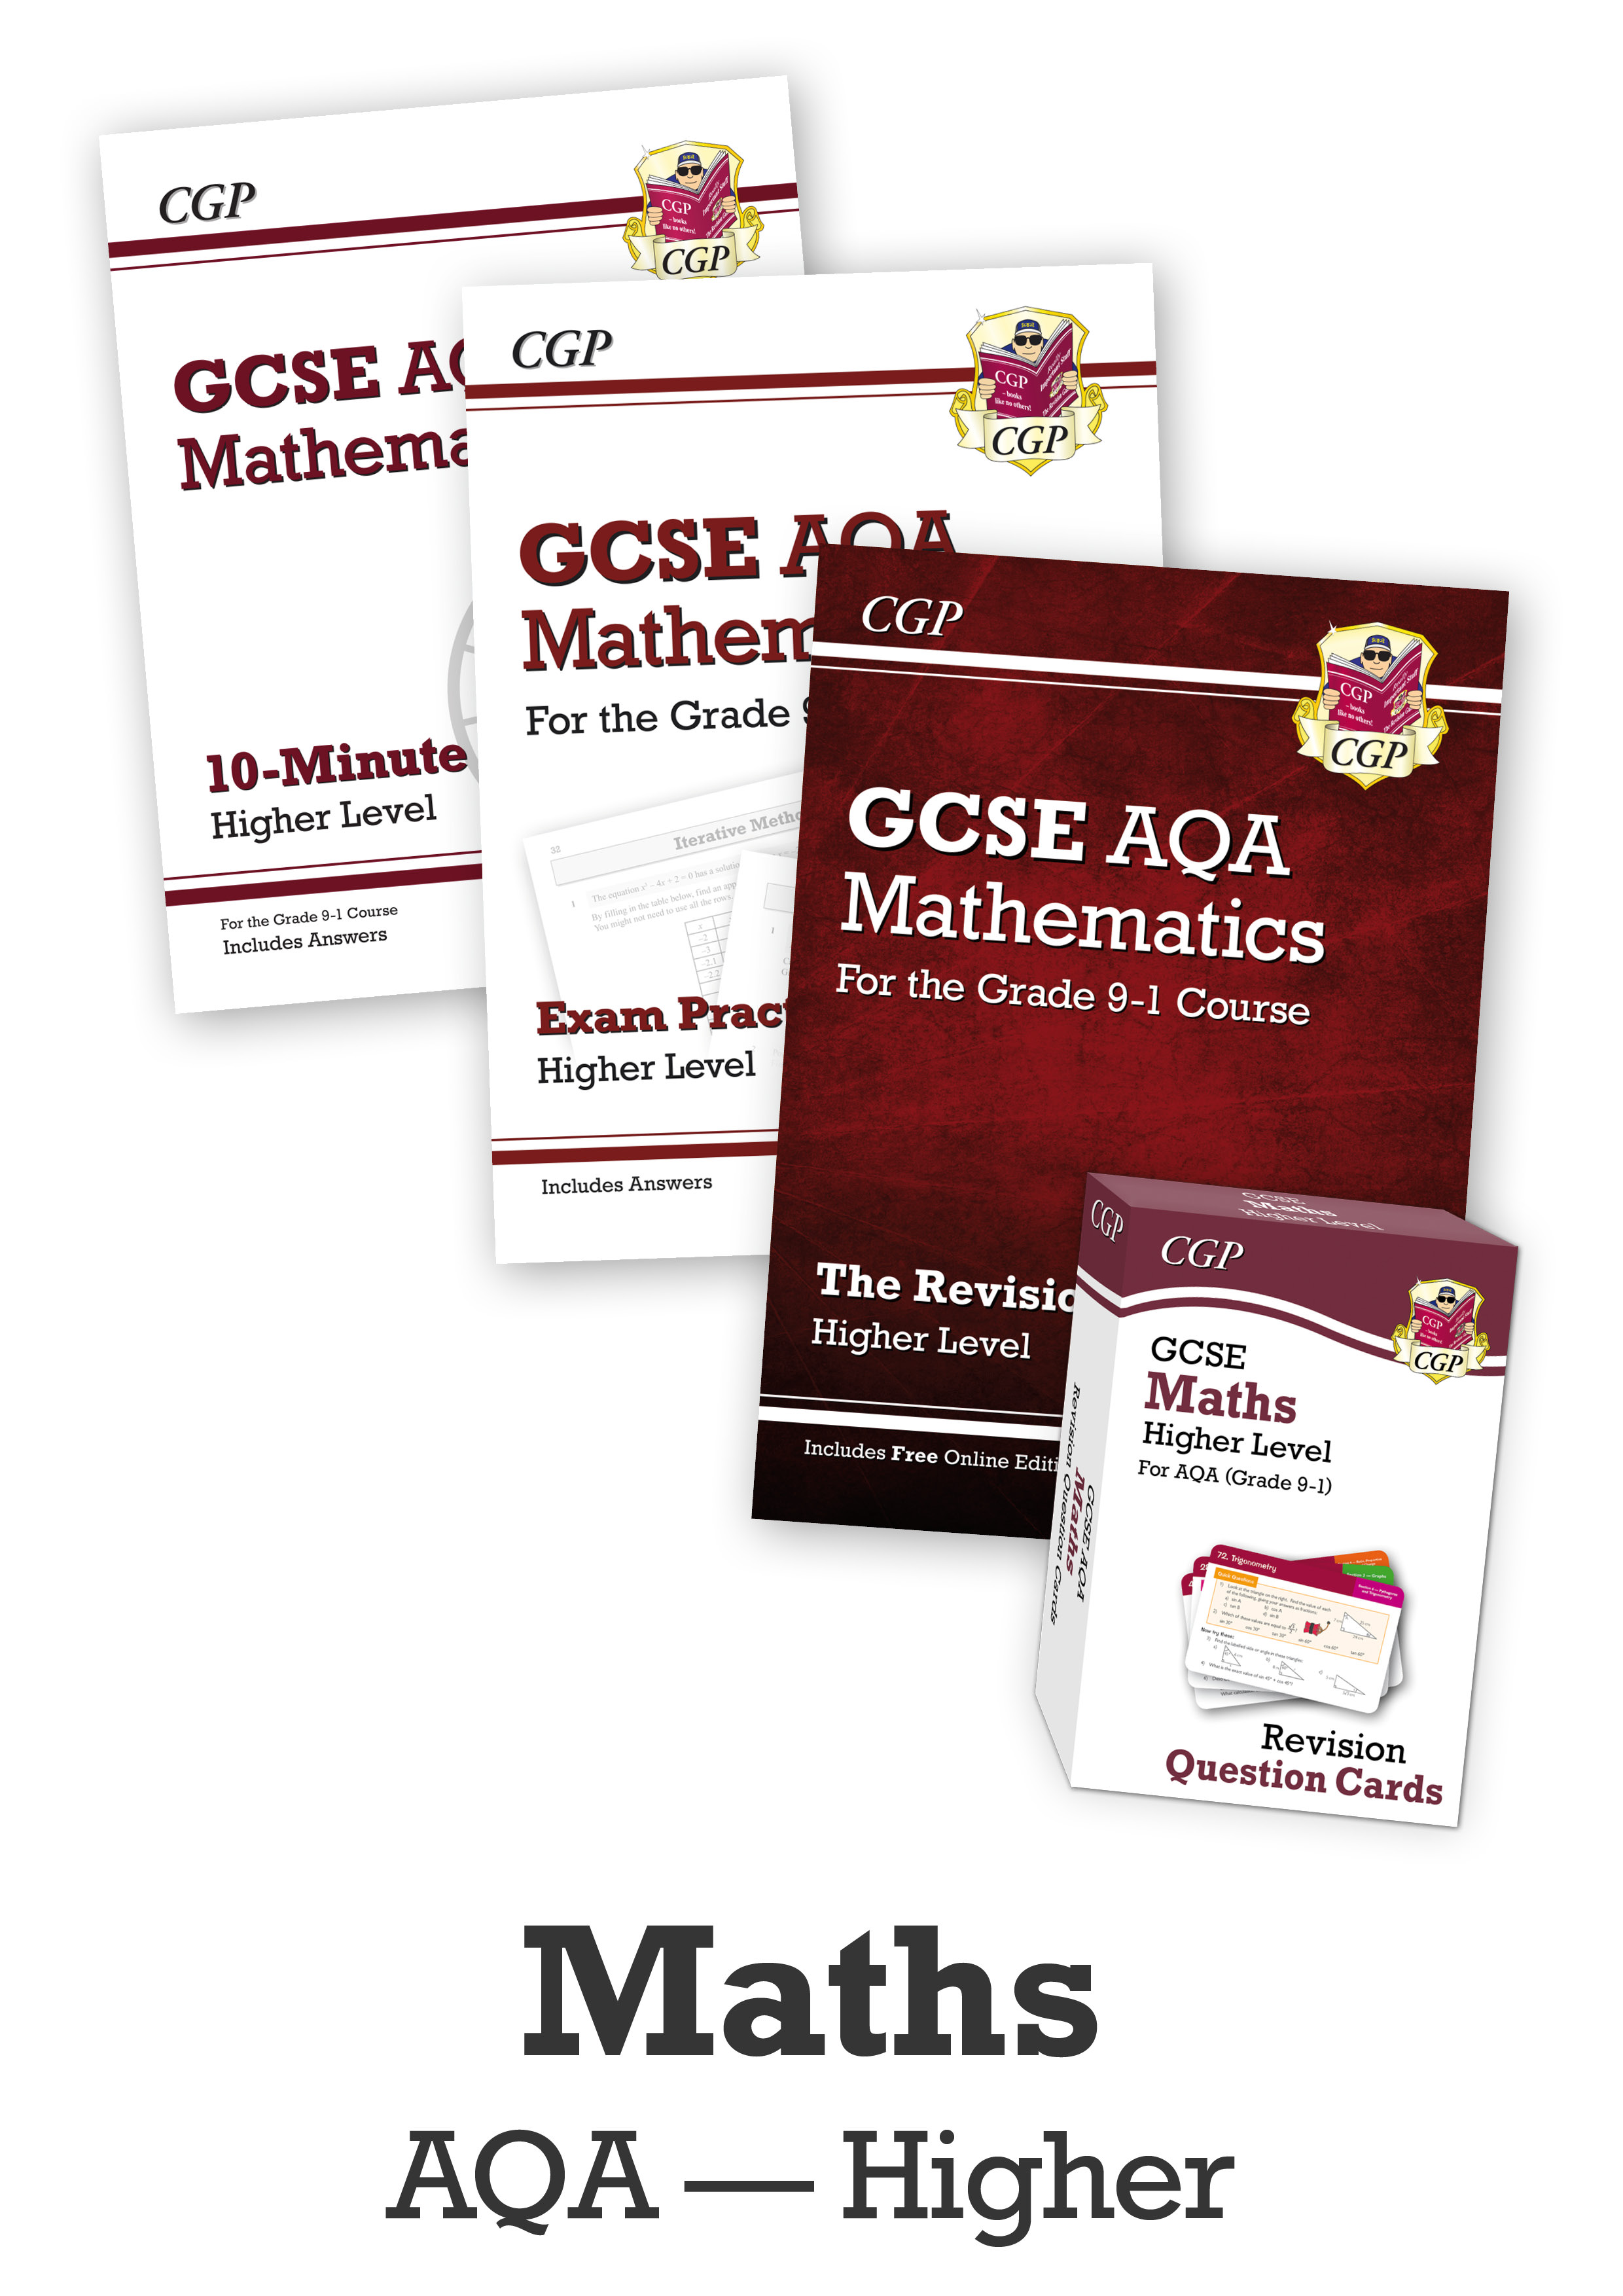 MQHCUB41 - GCSE Catch-Up Revision Essentials Bundle: AQA Maths Higher